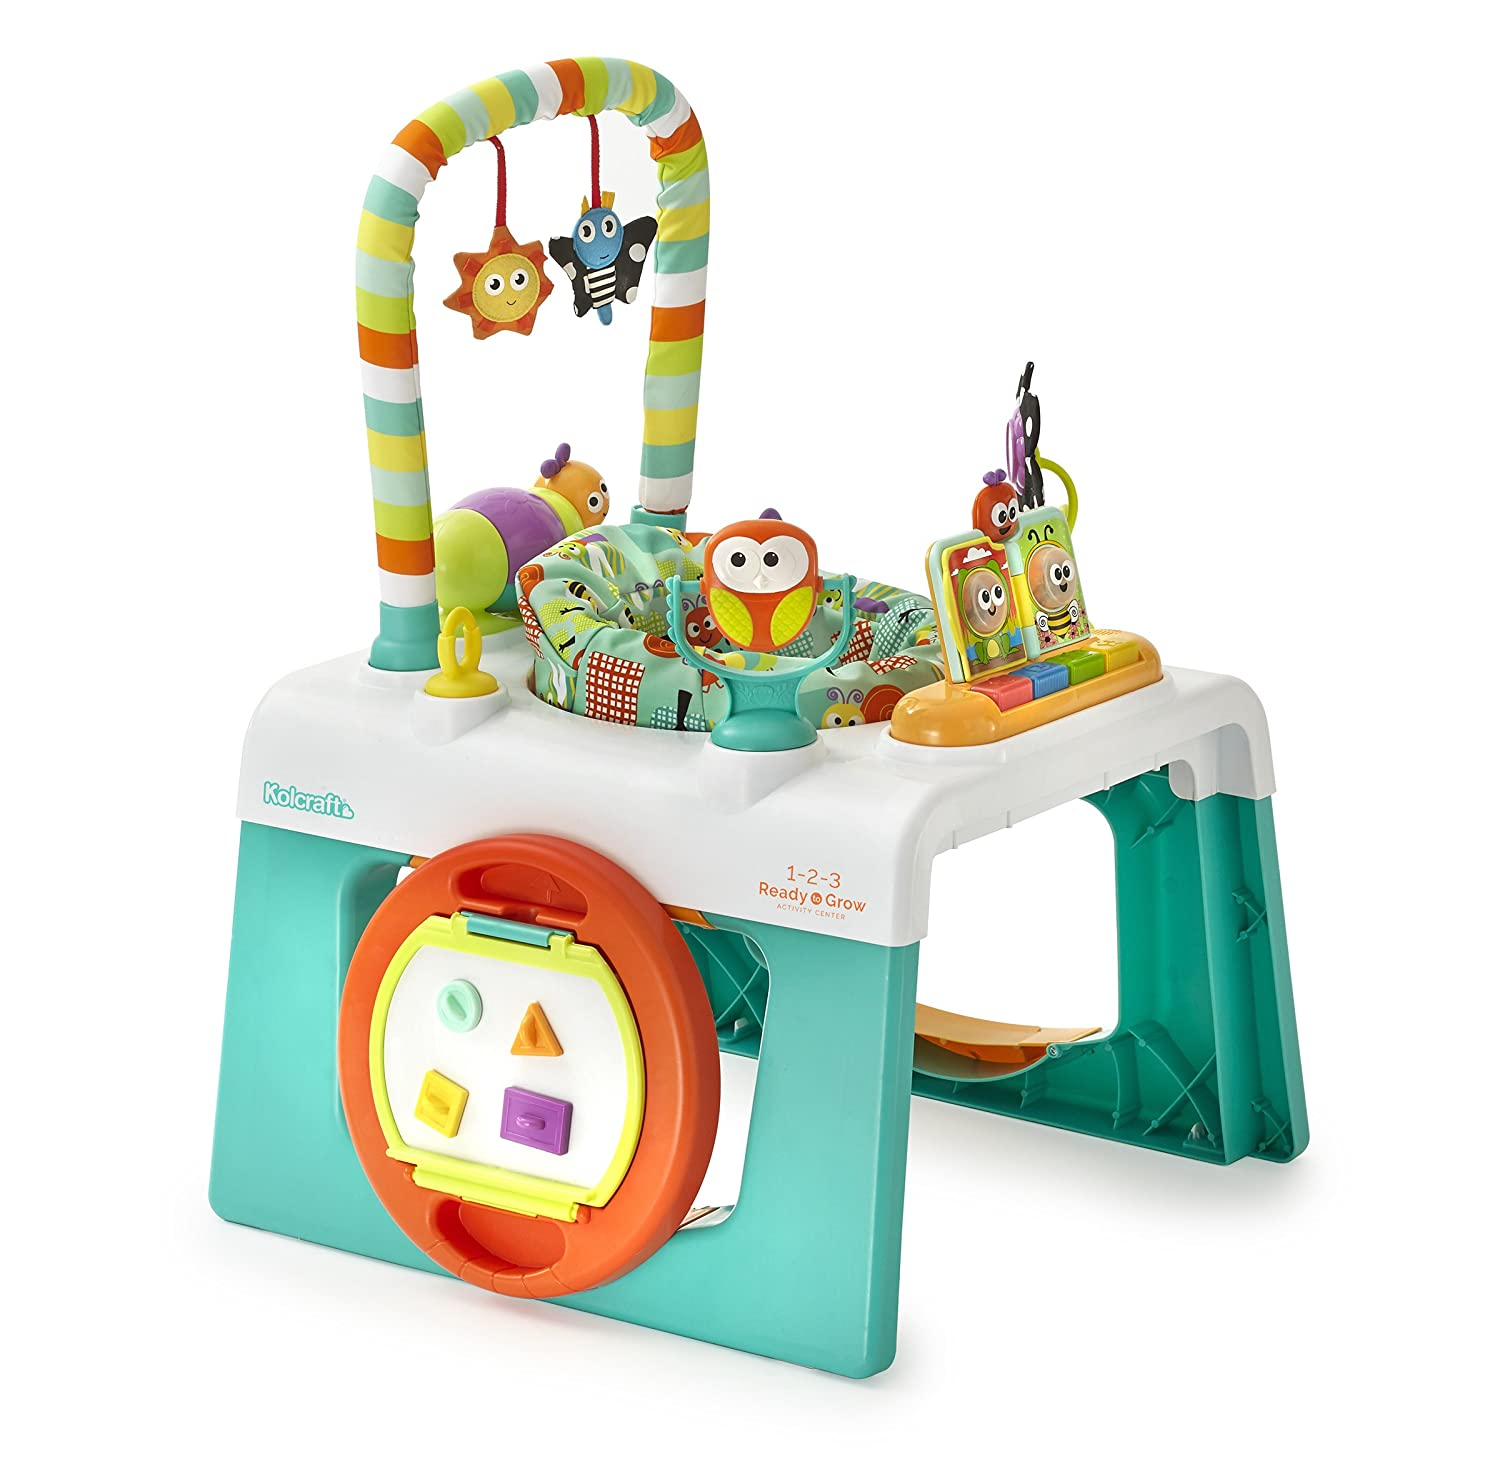 Kolcraft 1 2 3 Ready To Grow Infant Toddler Activity Center 3